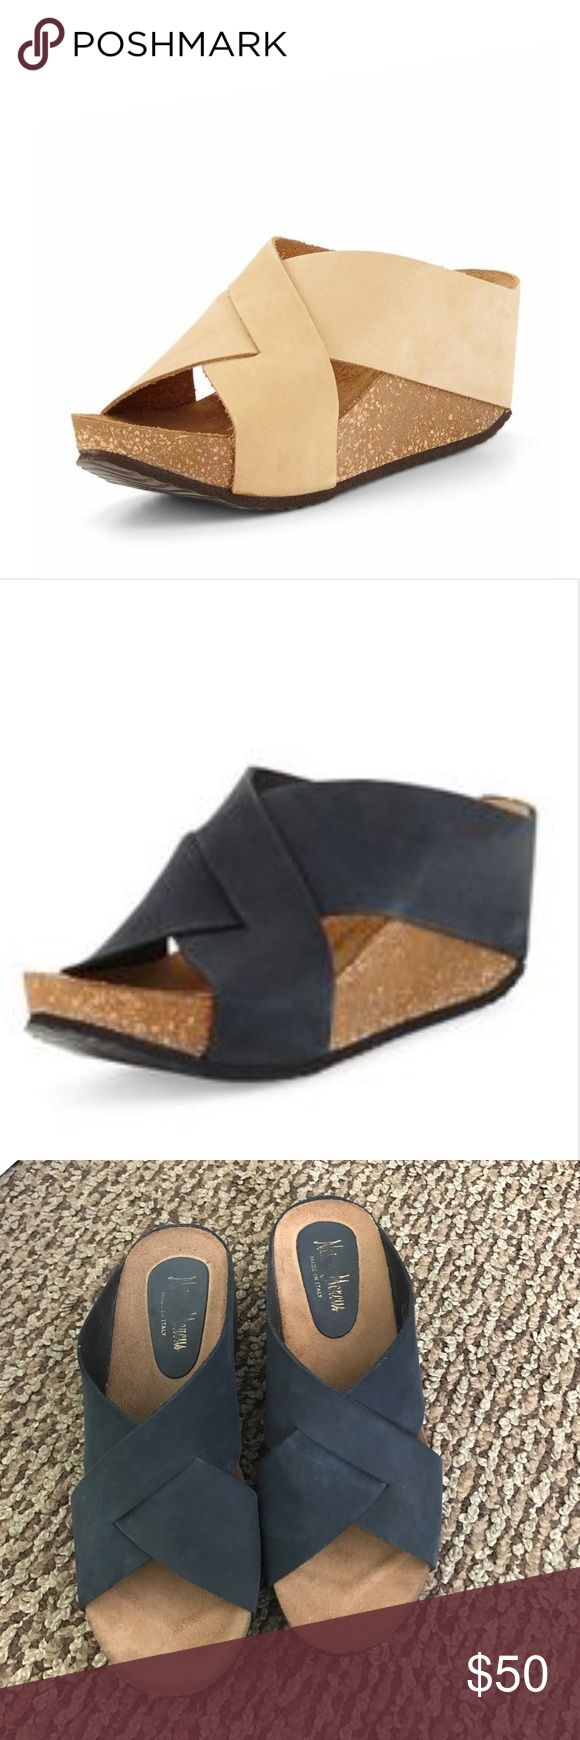 Neiman Marcus shoes Cute wedge shoes. Worn a couple times. Size 8 Neiman Marcus Shoes Wedges